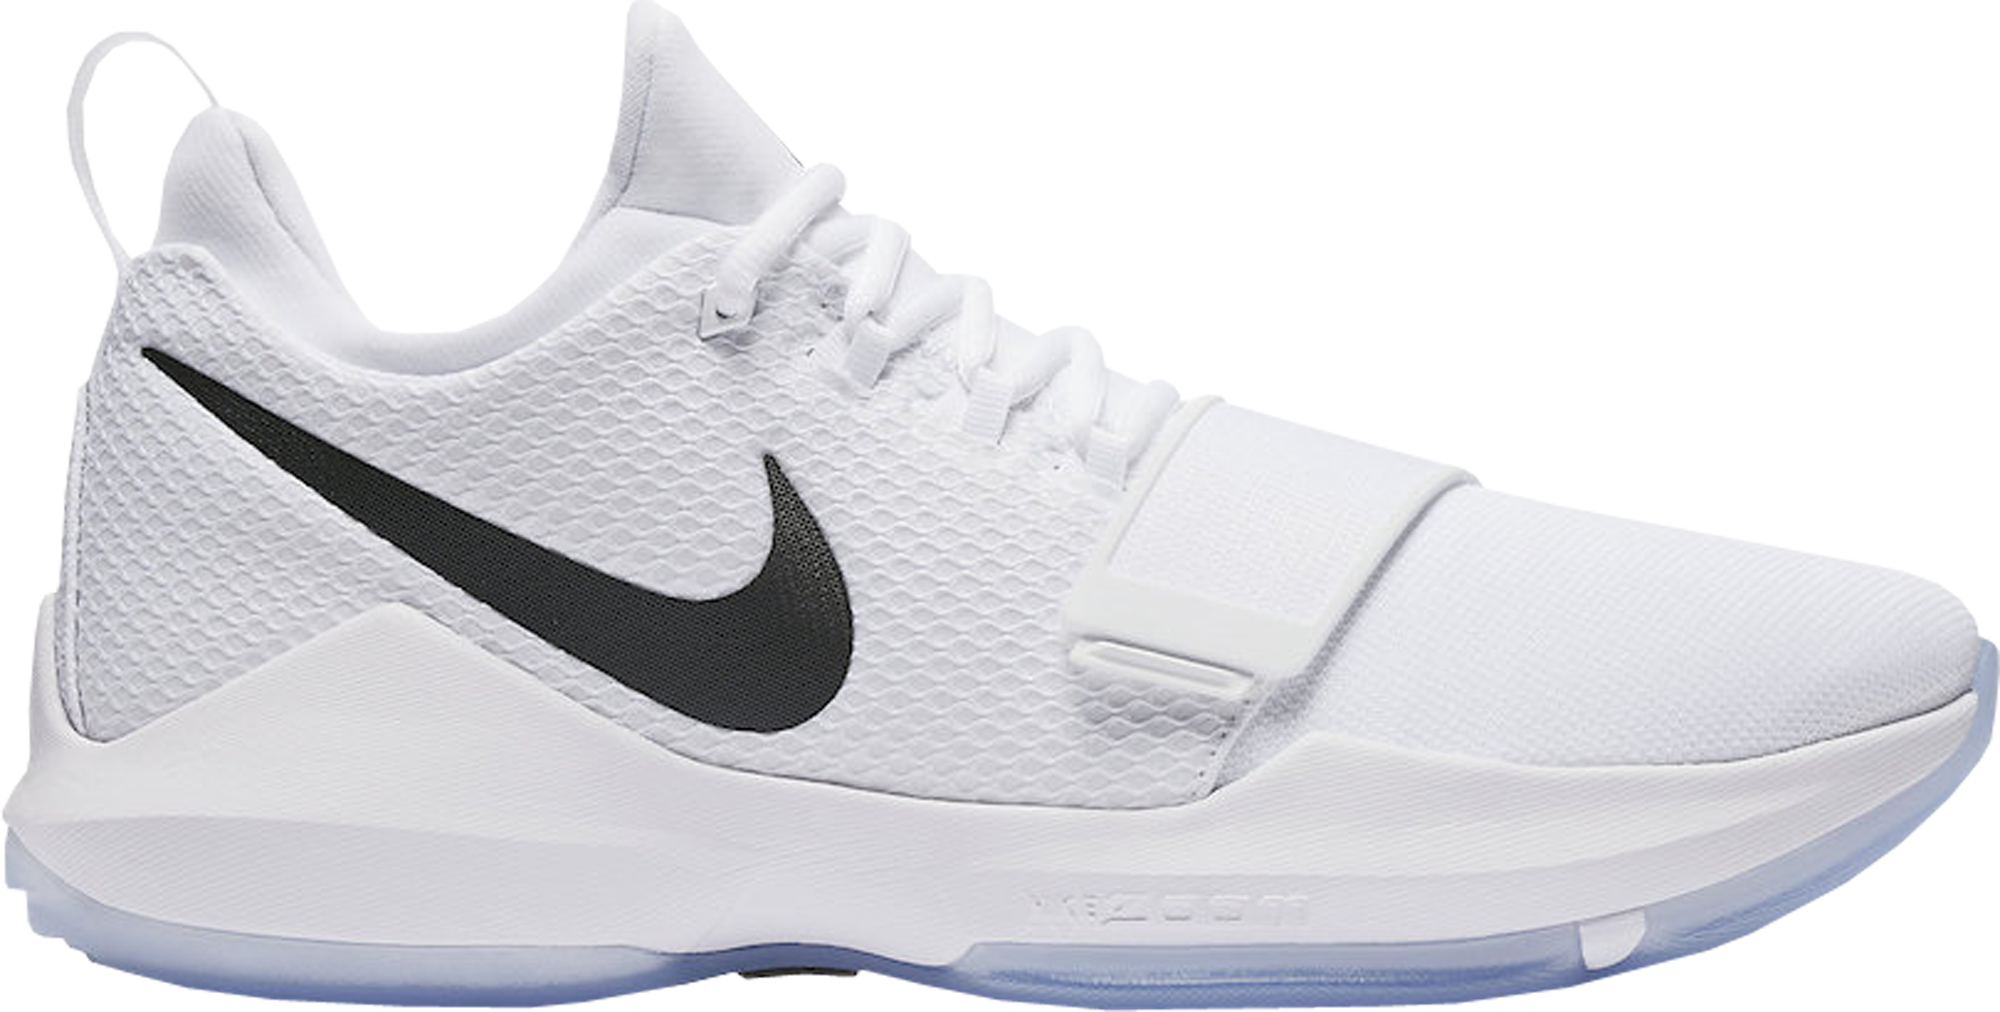 378239992ec8 Nike PG 1 White Black Chrome Paul George White Ice